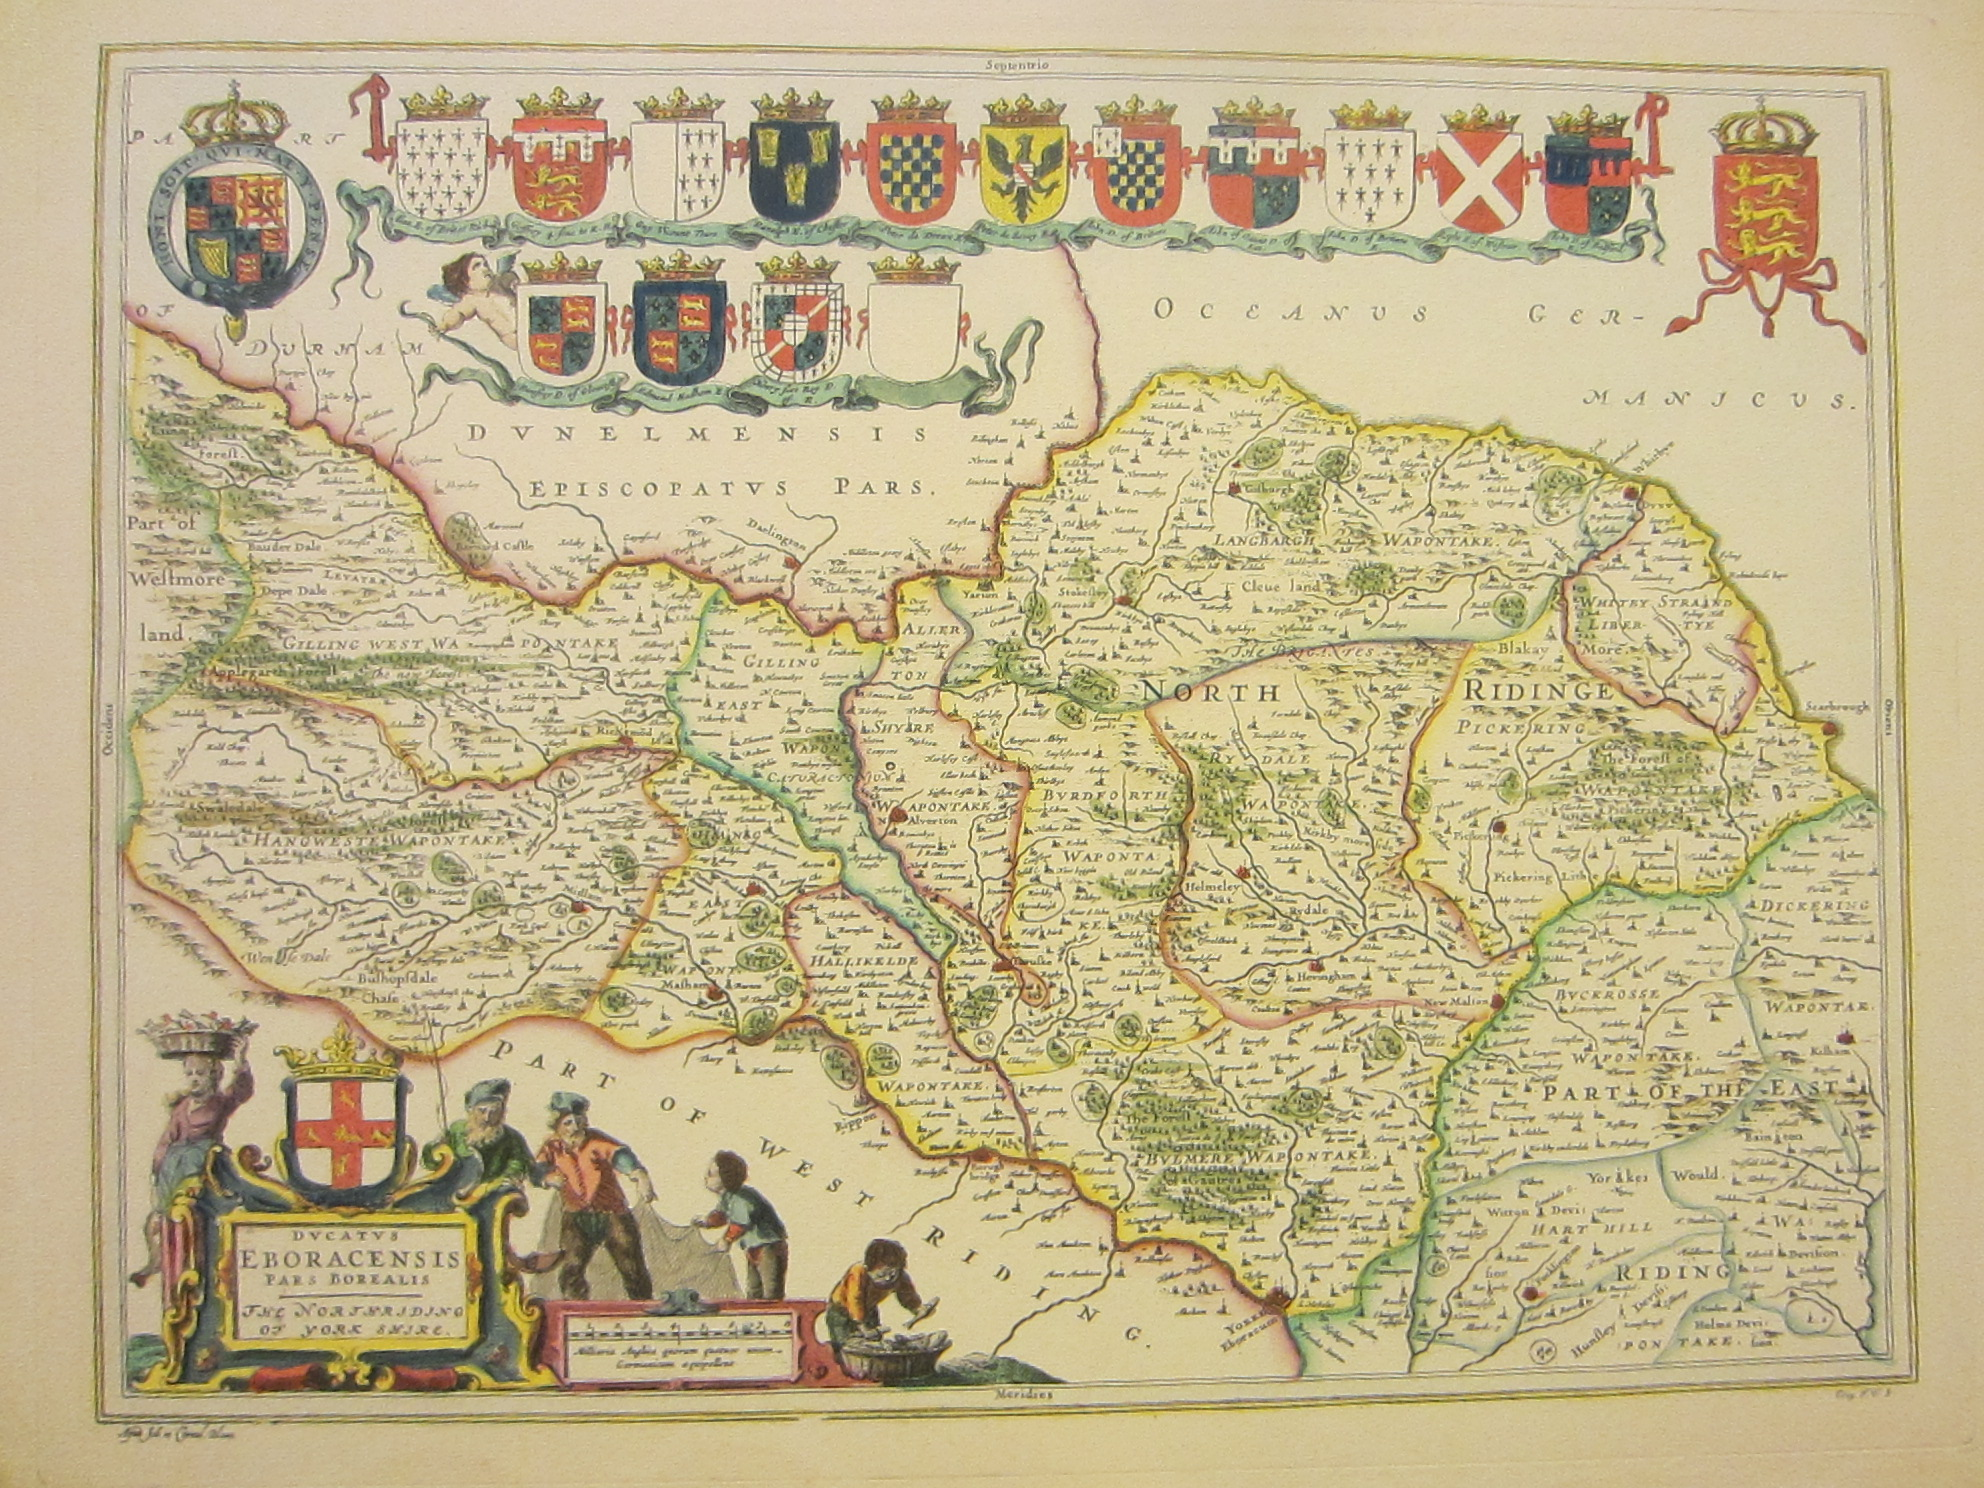 Yorkshire North Riding Map Elaborated Hand Decorated Art By Blaeu - Decorative maps for sale